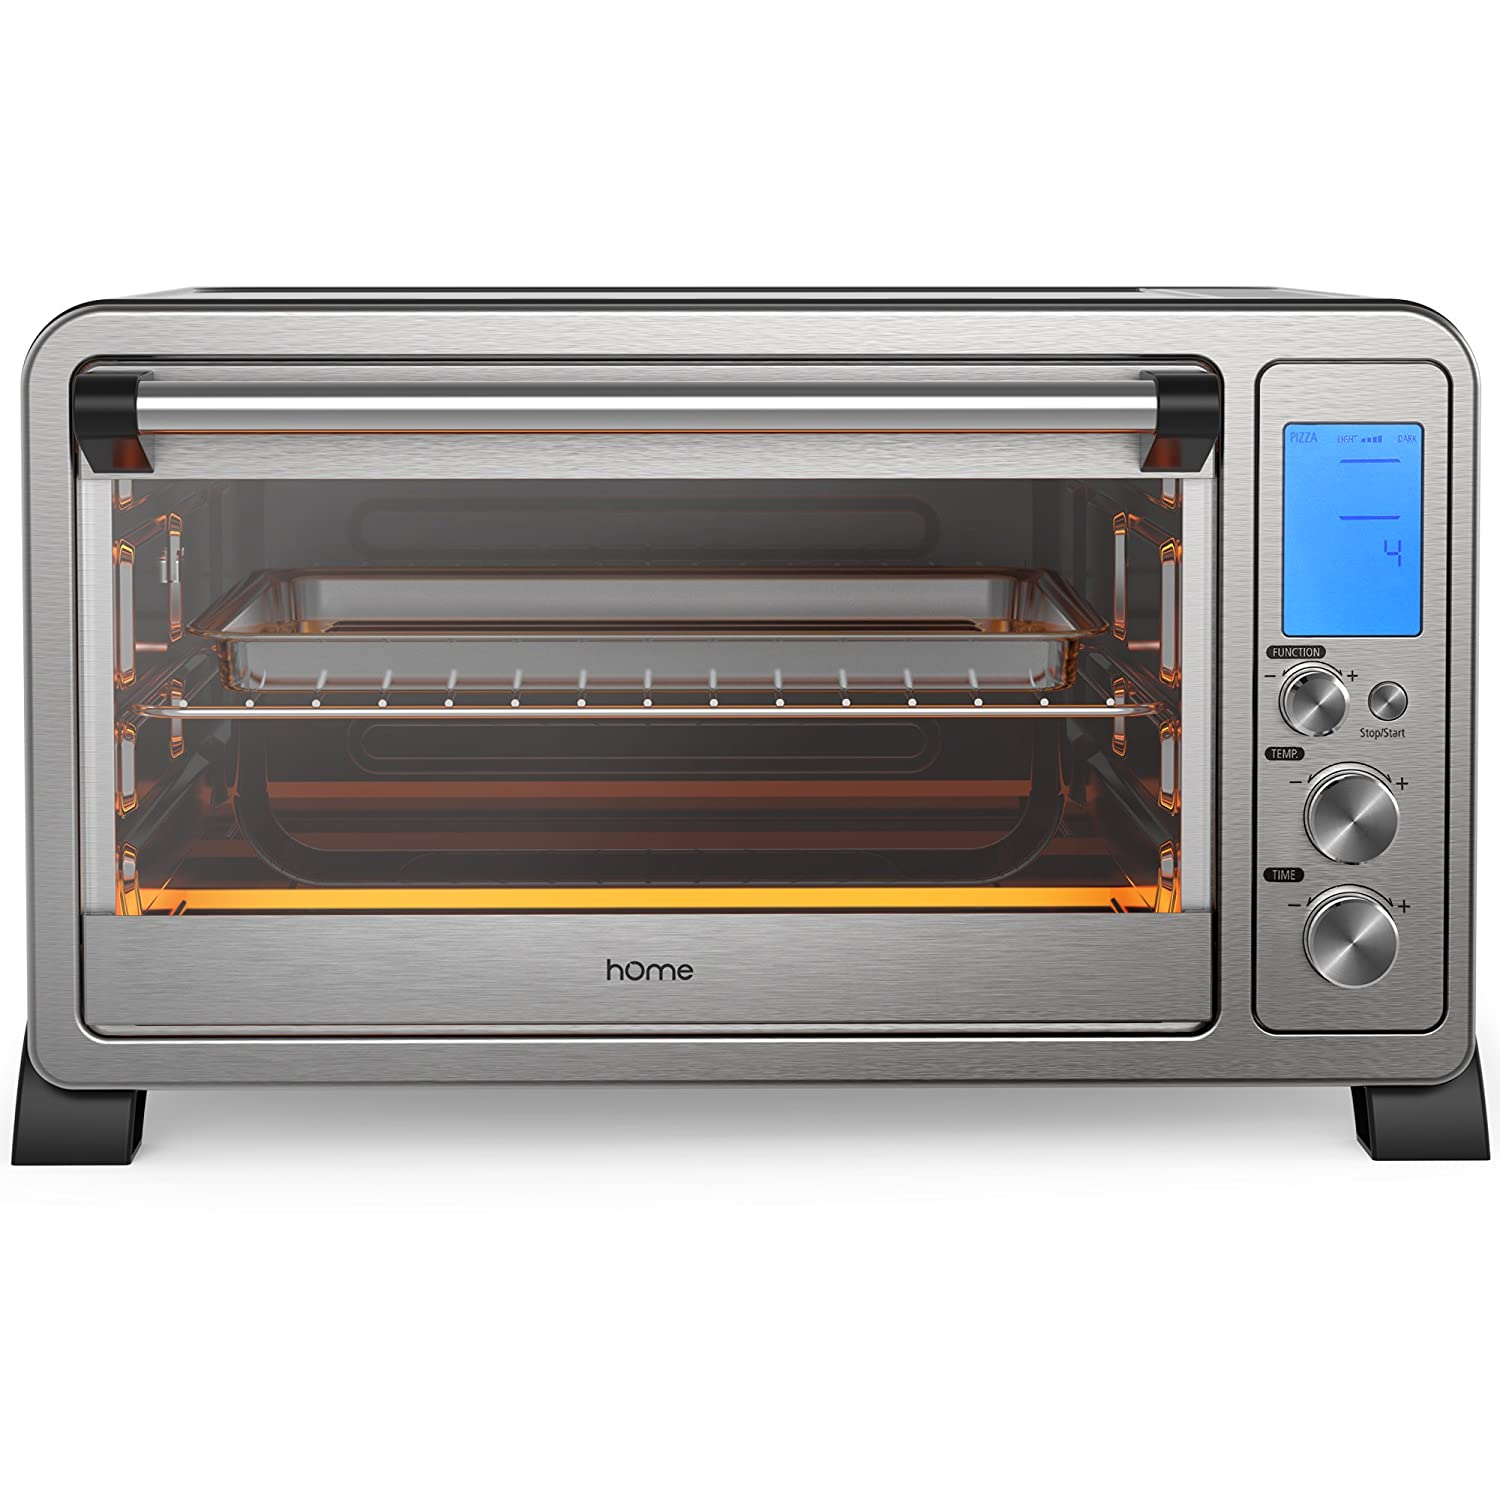 hOmeLabs Digital Countertop Convection Oven - 1500W, Stainless Steel Exterior, 6-Slice Toaster Capacity, LCD Display and Rotisserie Fork